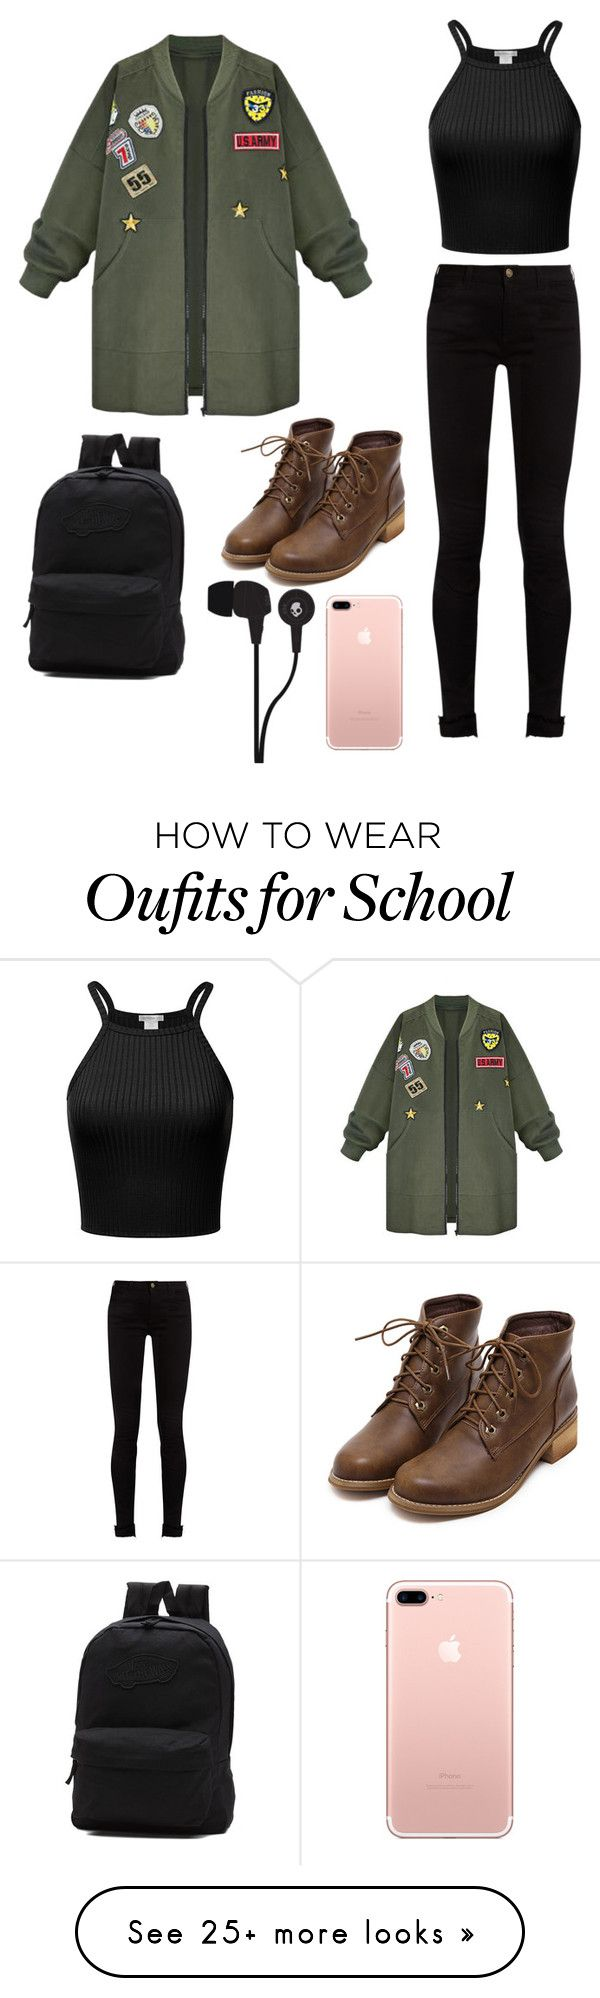 """school style"" by damlastyle on Polyvore featuring Gucci, WithChic, Vans and Skullcandy"